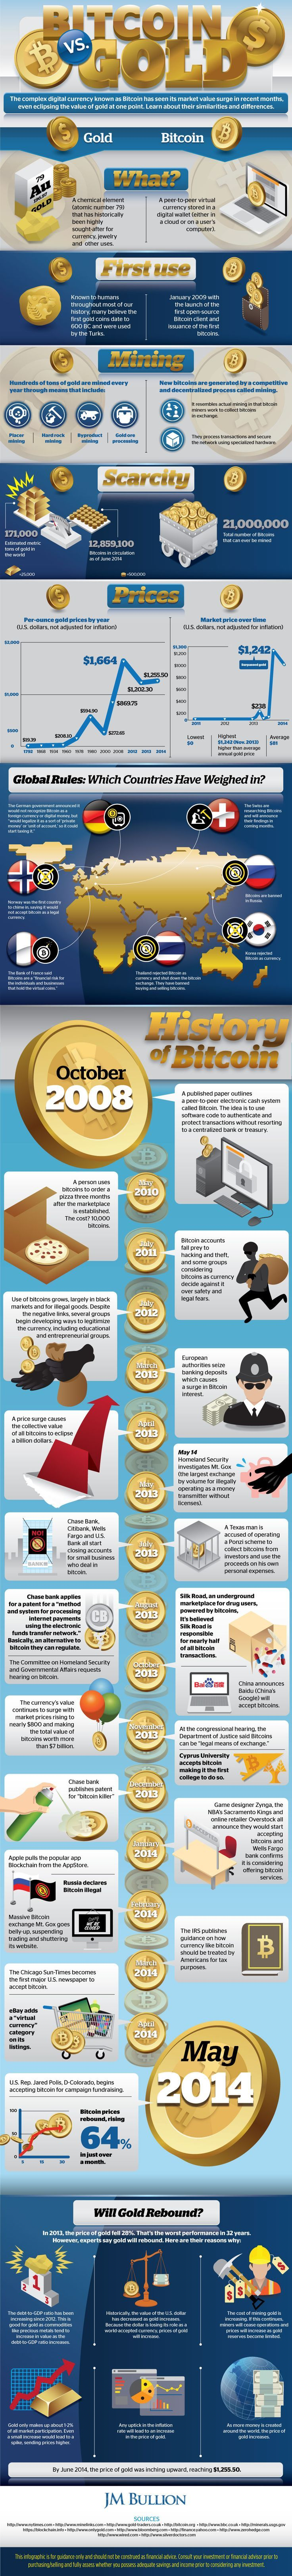 Gold vs. Bitcoin: How Do They Compare? | Gold Investing News.  Ready to invest in gold?  We have gold and silver bullion for sale.   RocksInMyHead™ is the World's Greatest Rock, Prospecting & Outdoor Education Company.   For gold prospecting, rockhounding, lapidary and geology tools, and jewelry making supplies, equipment, books, maps, great outdoor gear, plus gold, silver, and lots of great rocks, minerals, fossils, & meteorites, go to our website http://RocksInMyHead.com. How to Invest